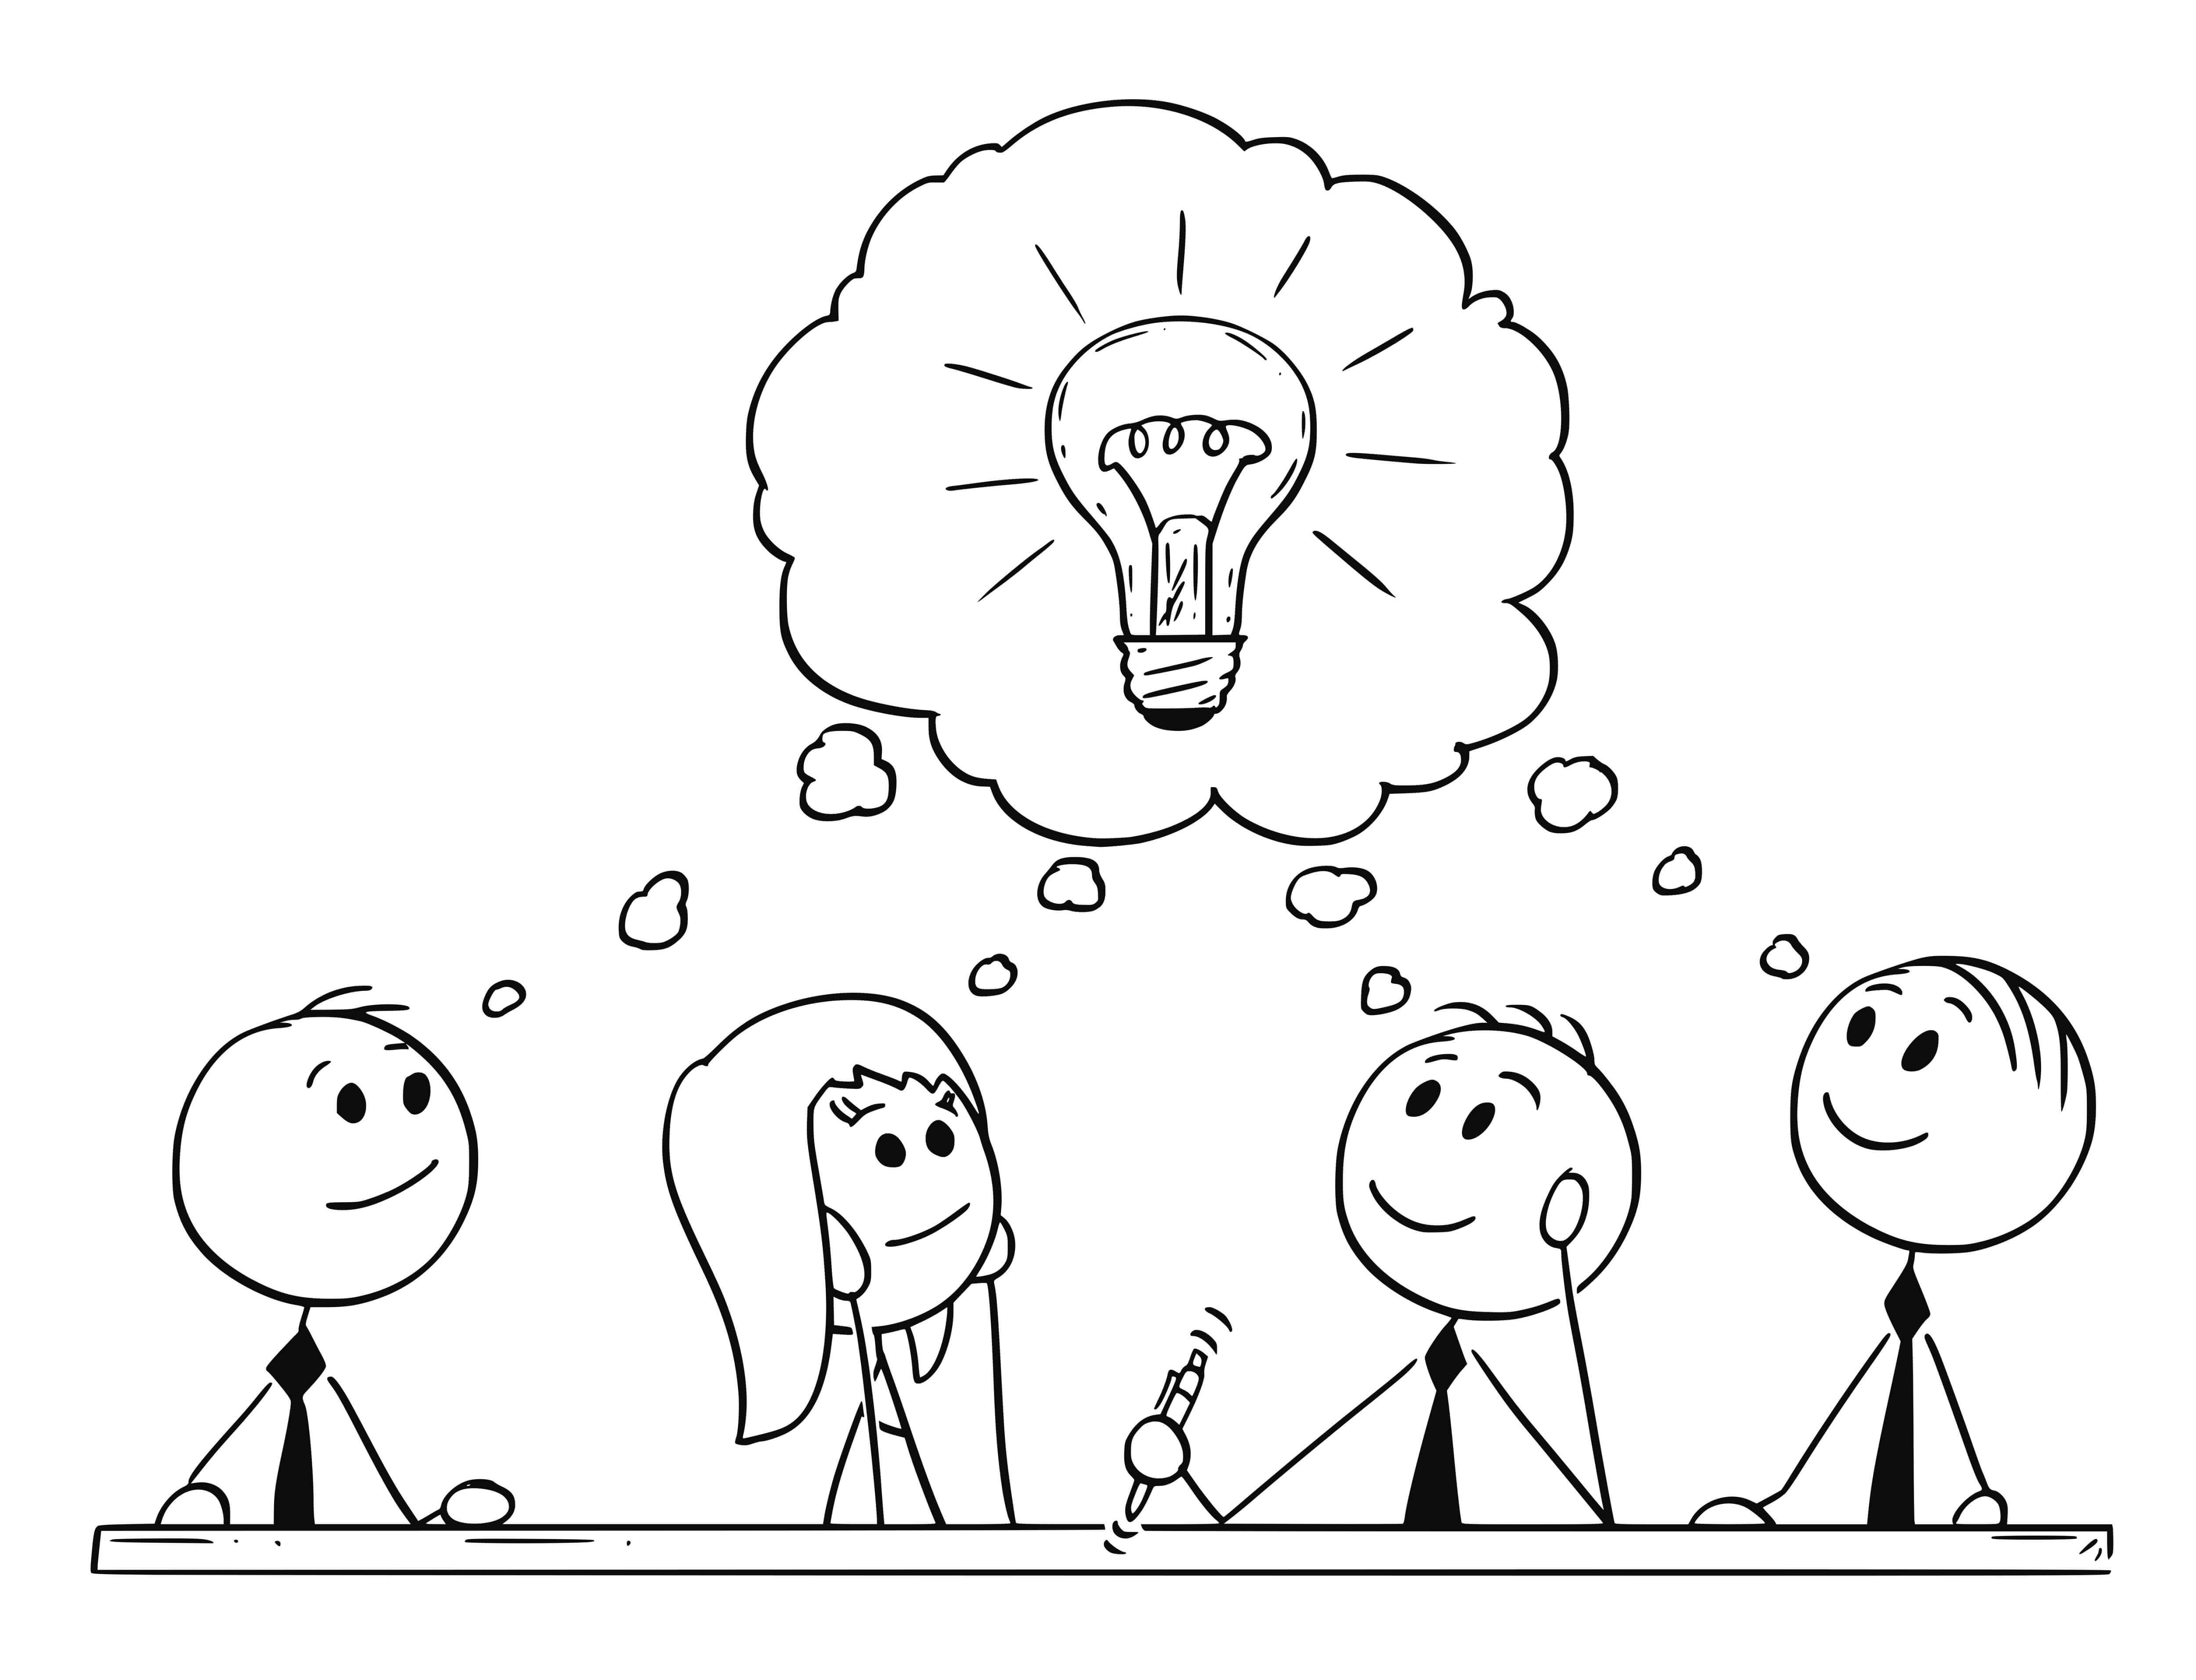 15 Techniques Of Brainstorming For More Effective Sessions